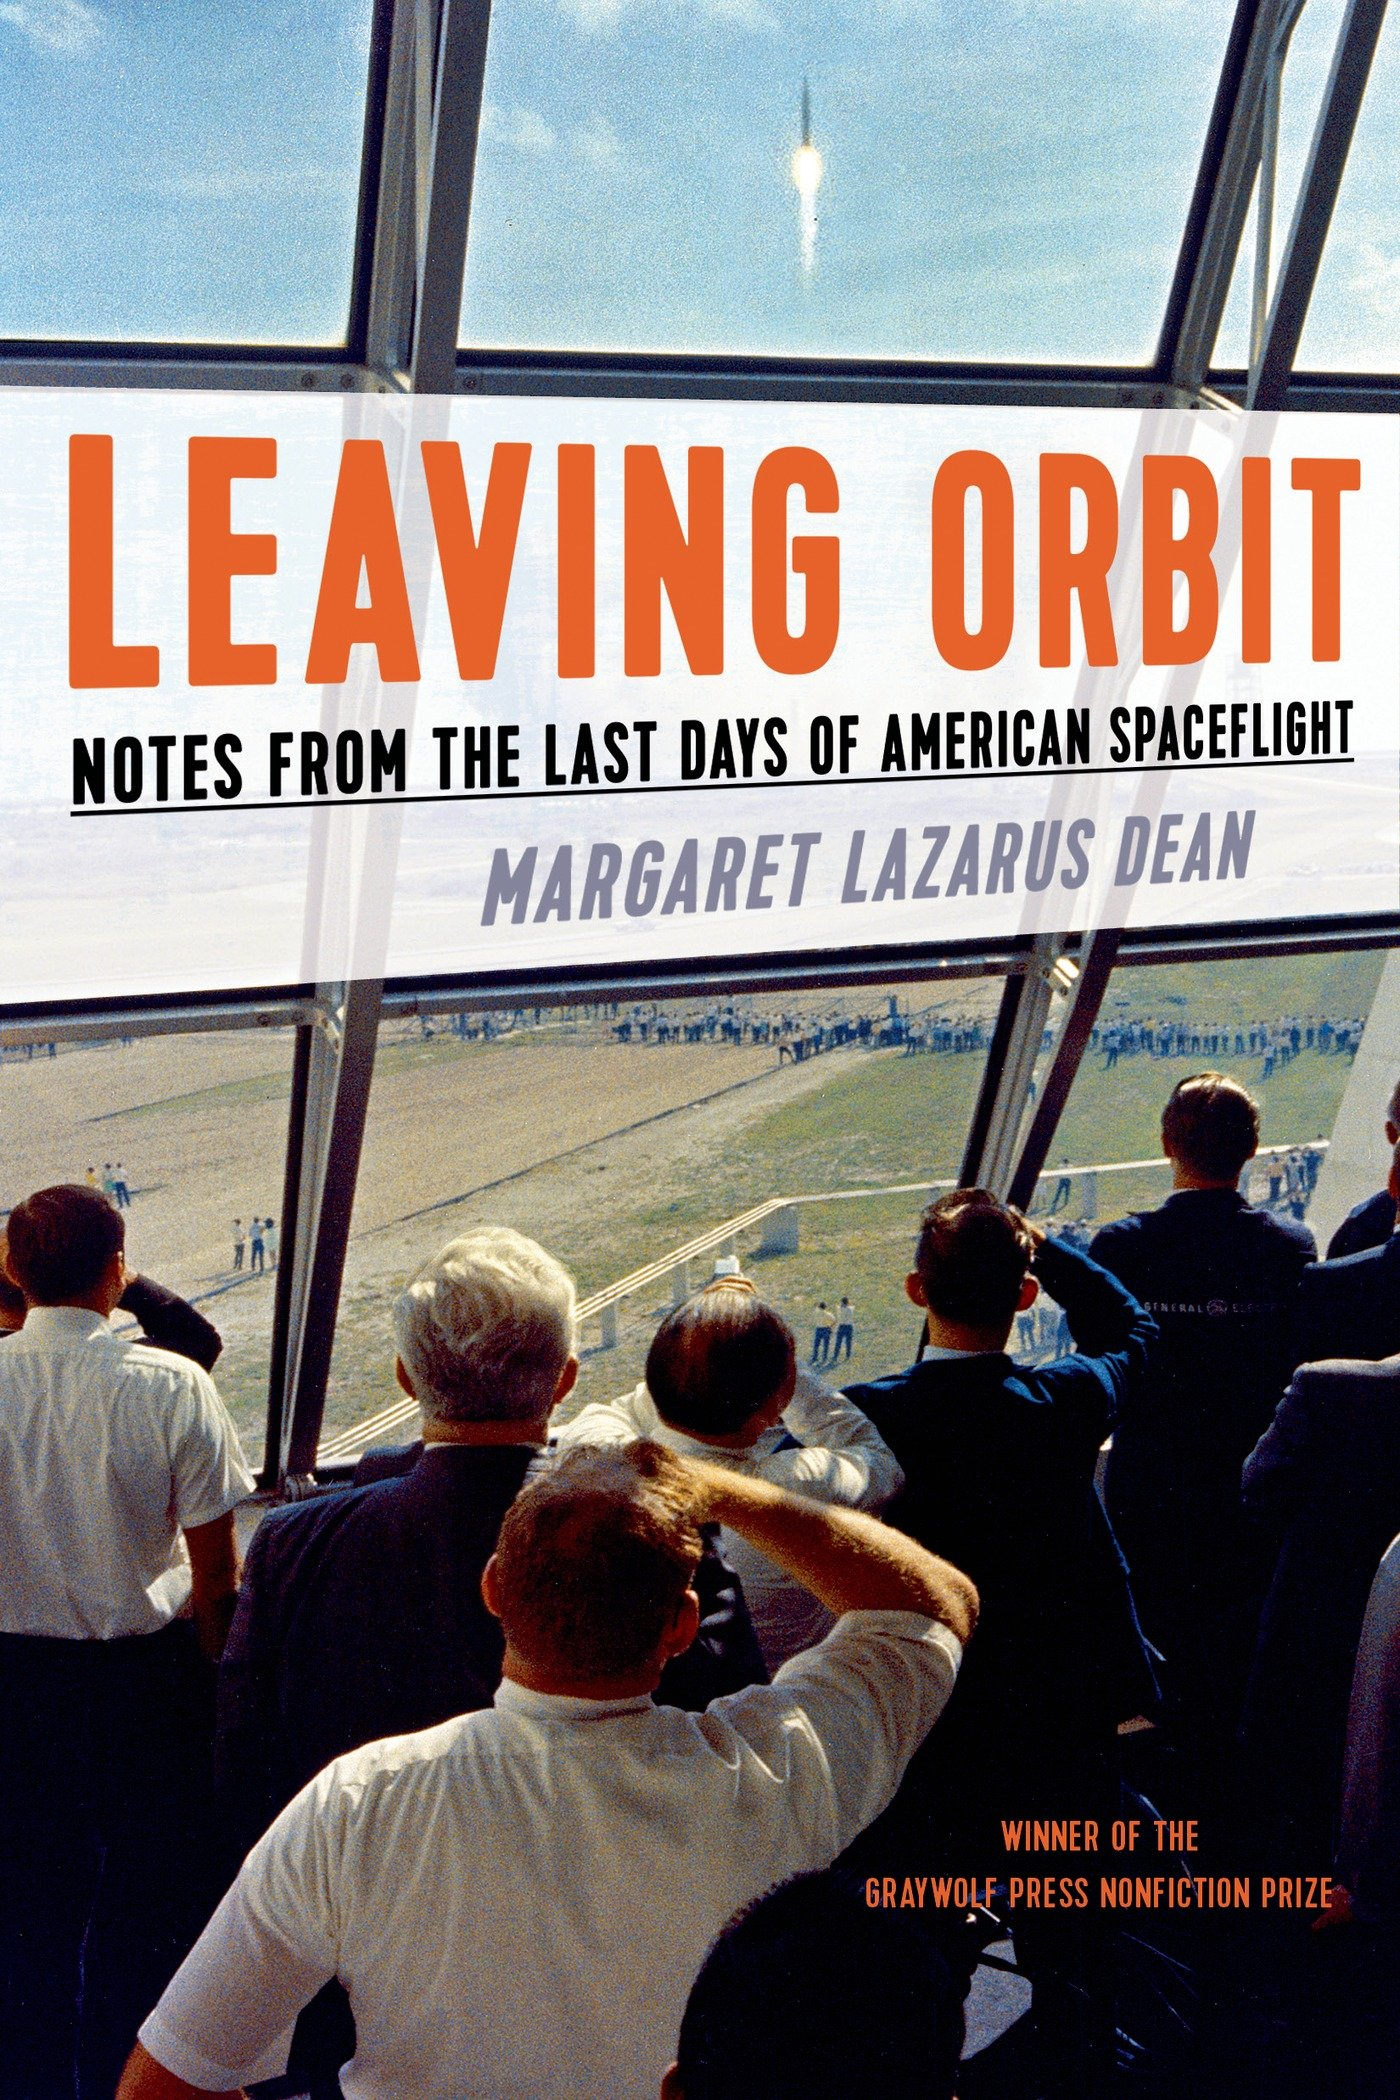 Leaving Orbit: Notes from the Last Days of American Spaceflight by Margaret Lazarus Dean